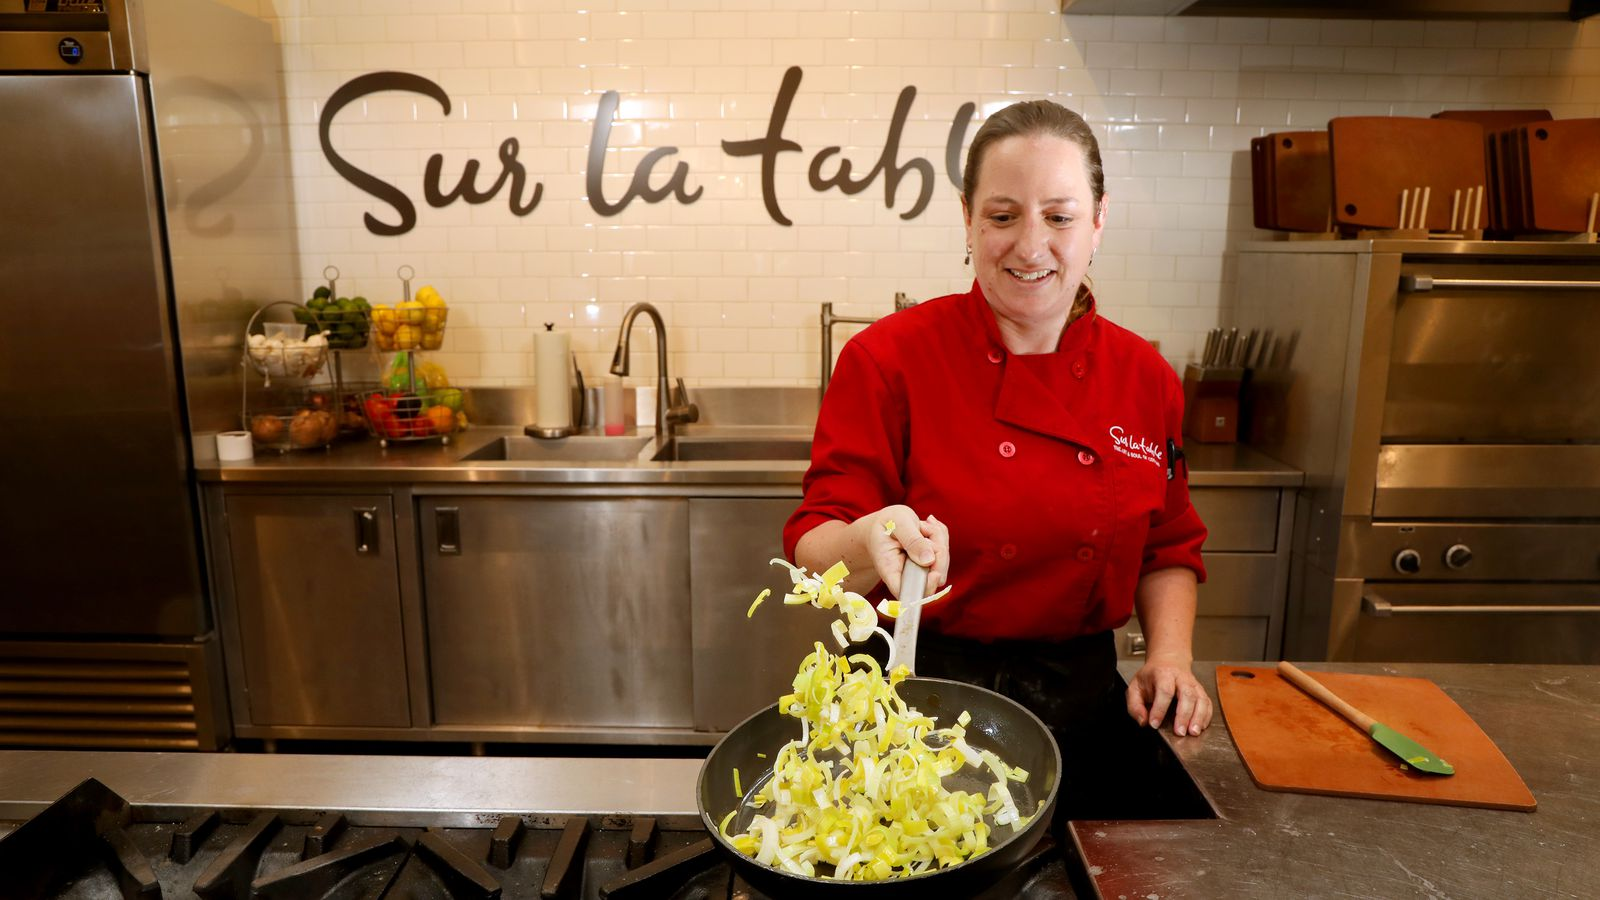 Tampa S Sur La Table Pasta Class Eased A Fear Of Brown Butter